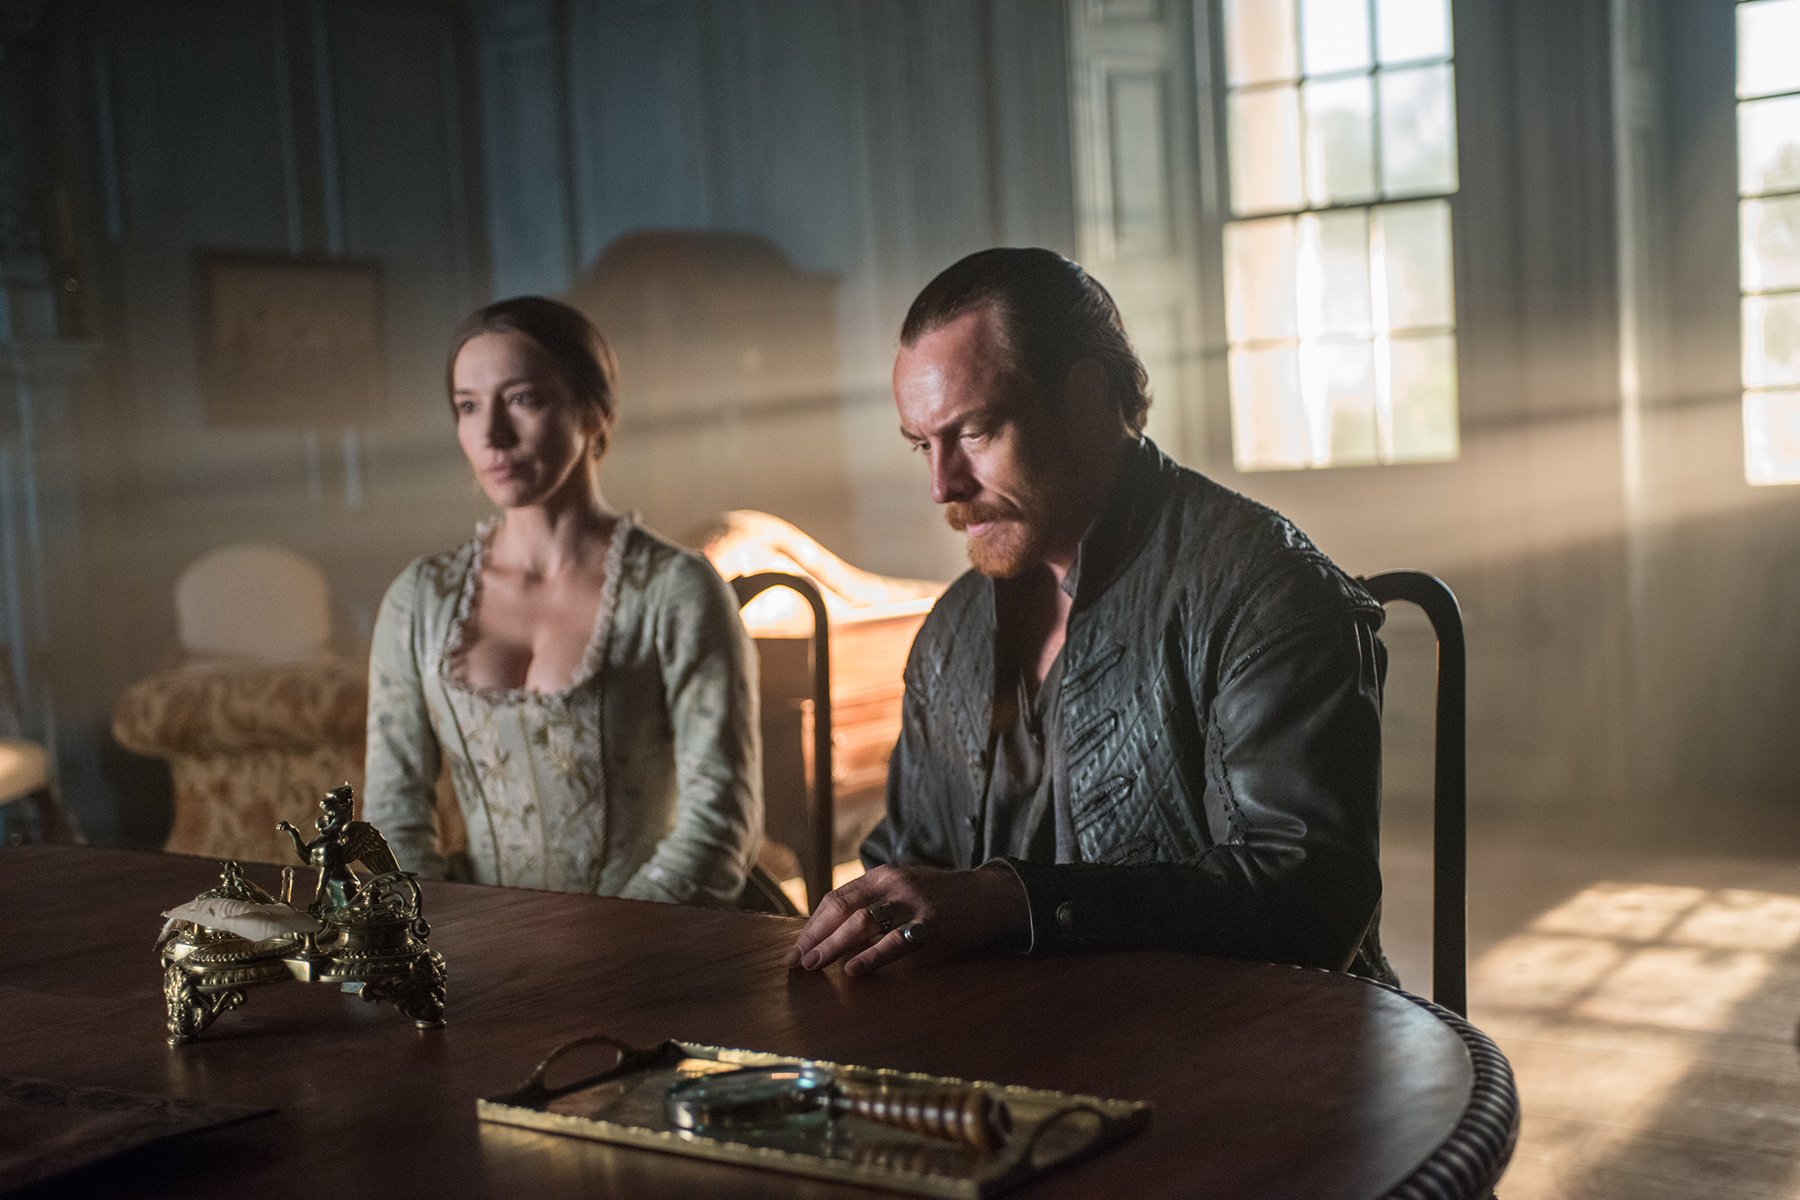 Black sails s3 pirate captain flint leather coat - Queer And Diverse Black Sails Is Quietly Tv S Most Revolutionary Show Inverse